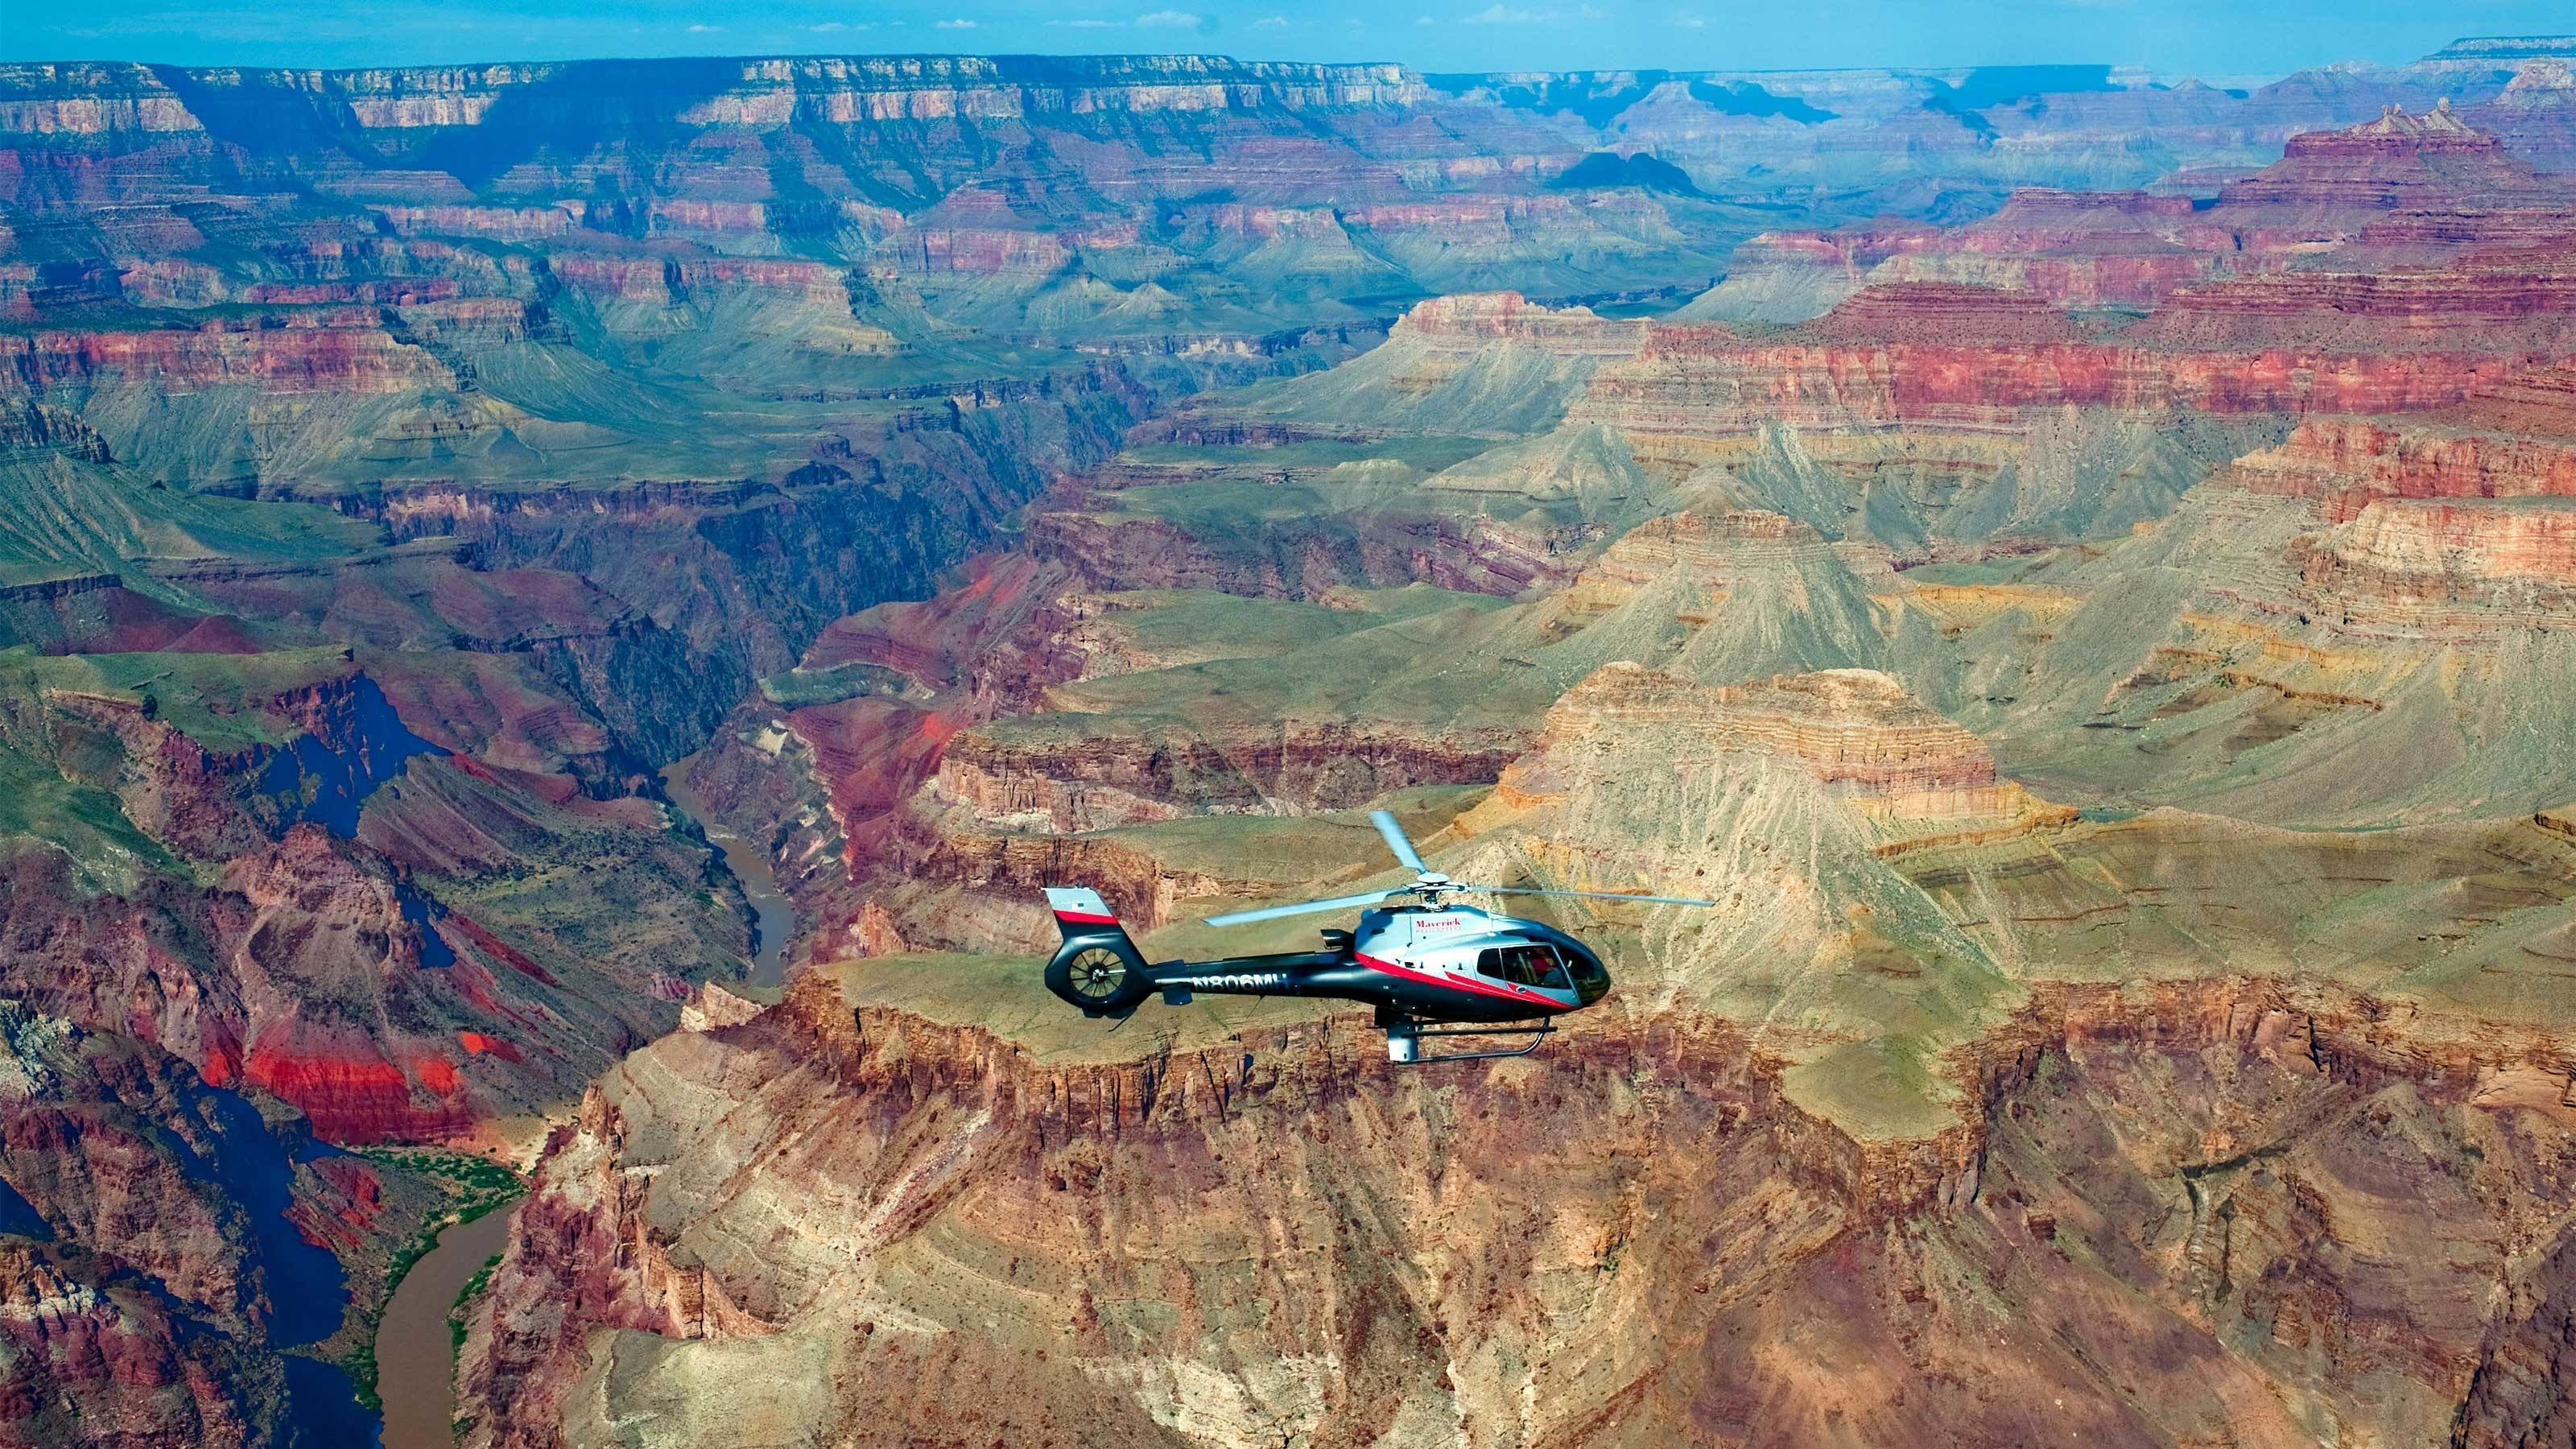 Scenic view of a helicopter flying above the Grand Canyon